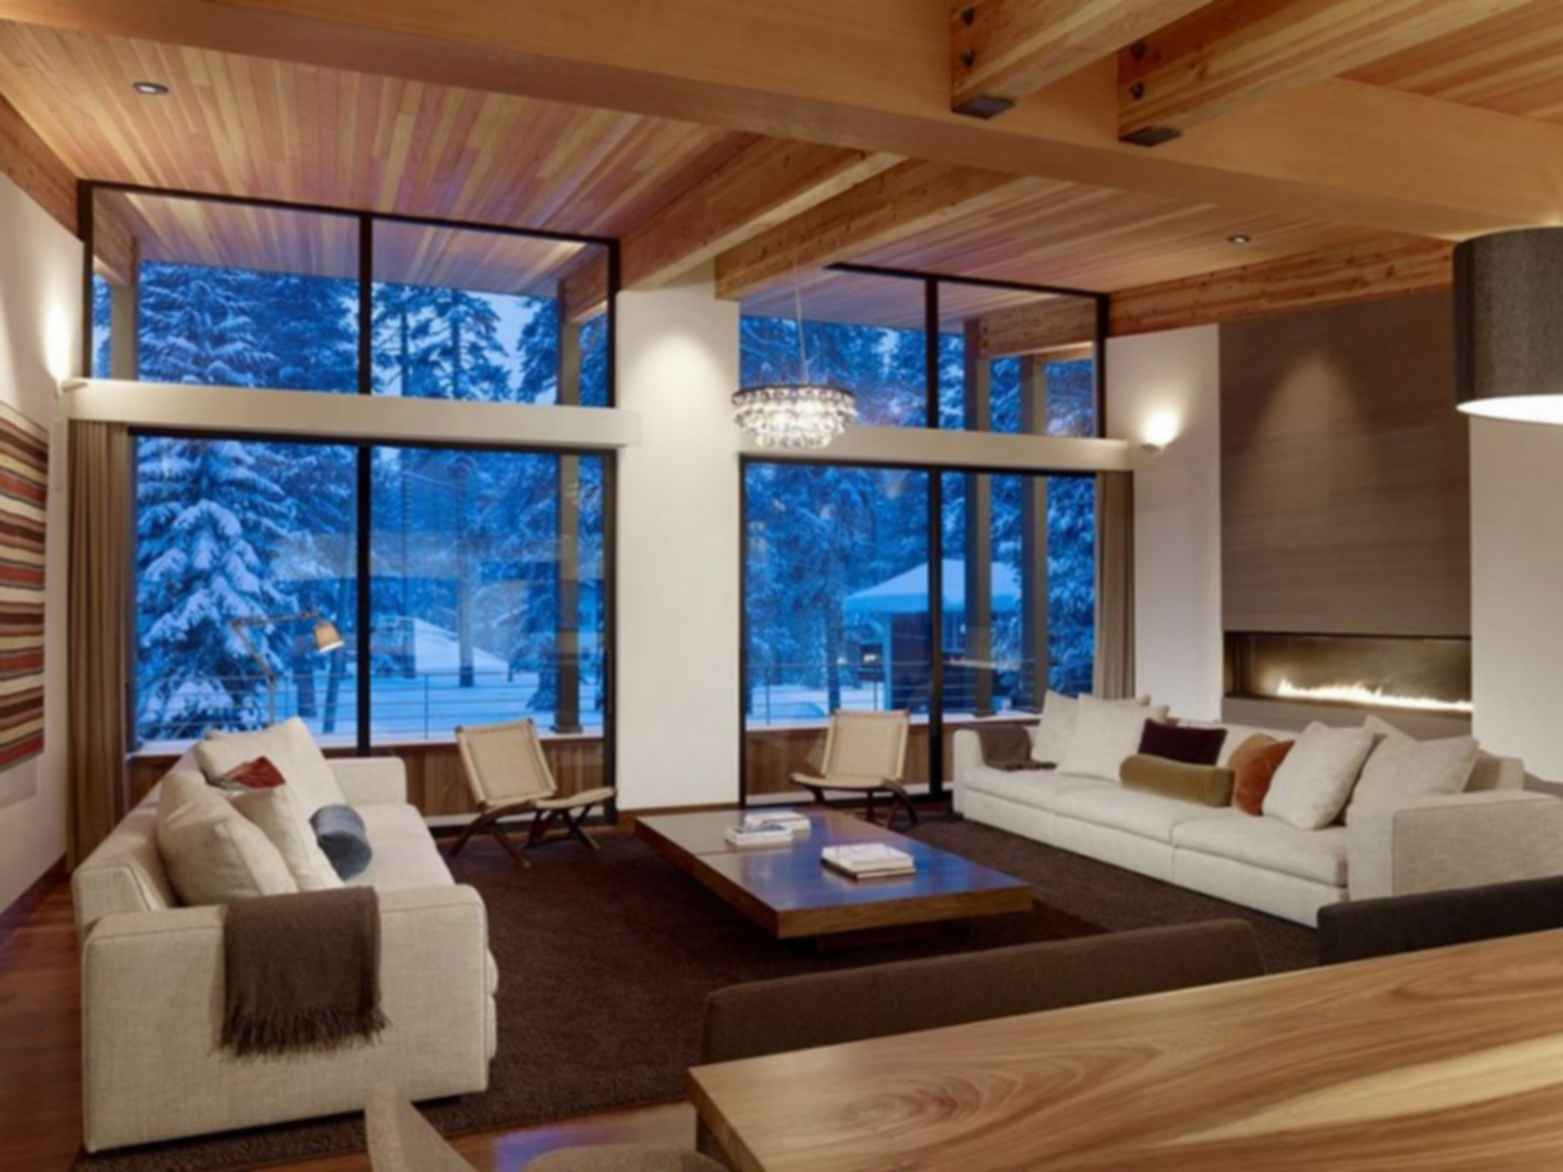 The Sugar Bowl Residence - Interior Lounge